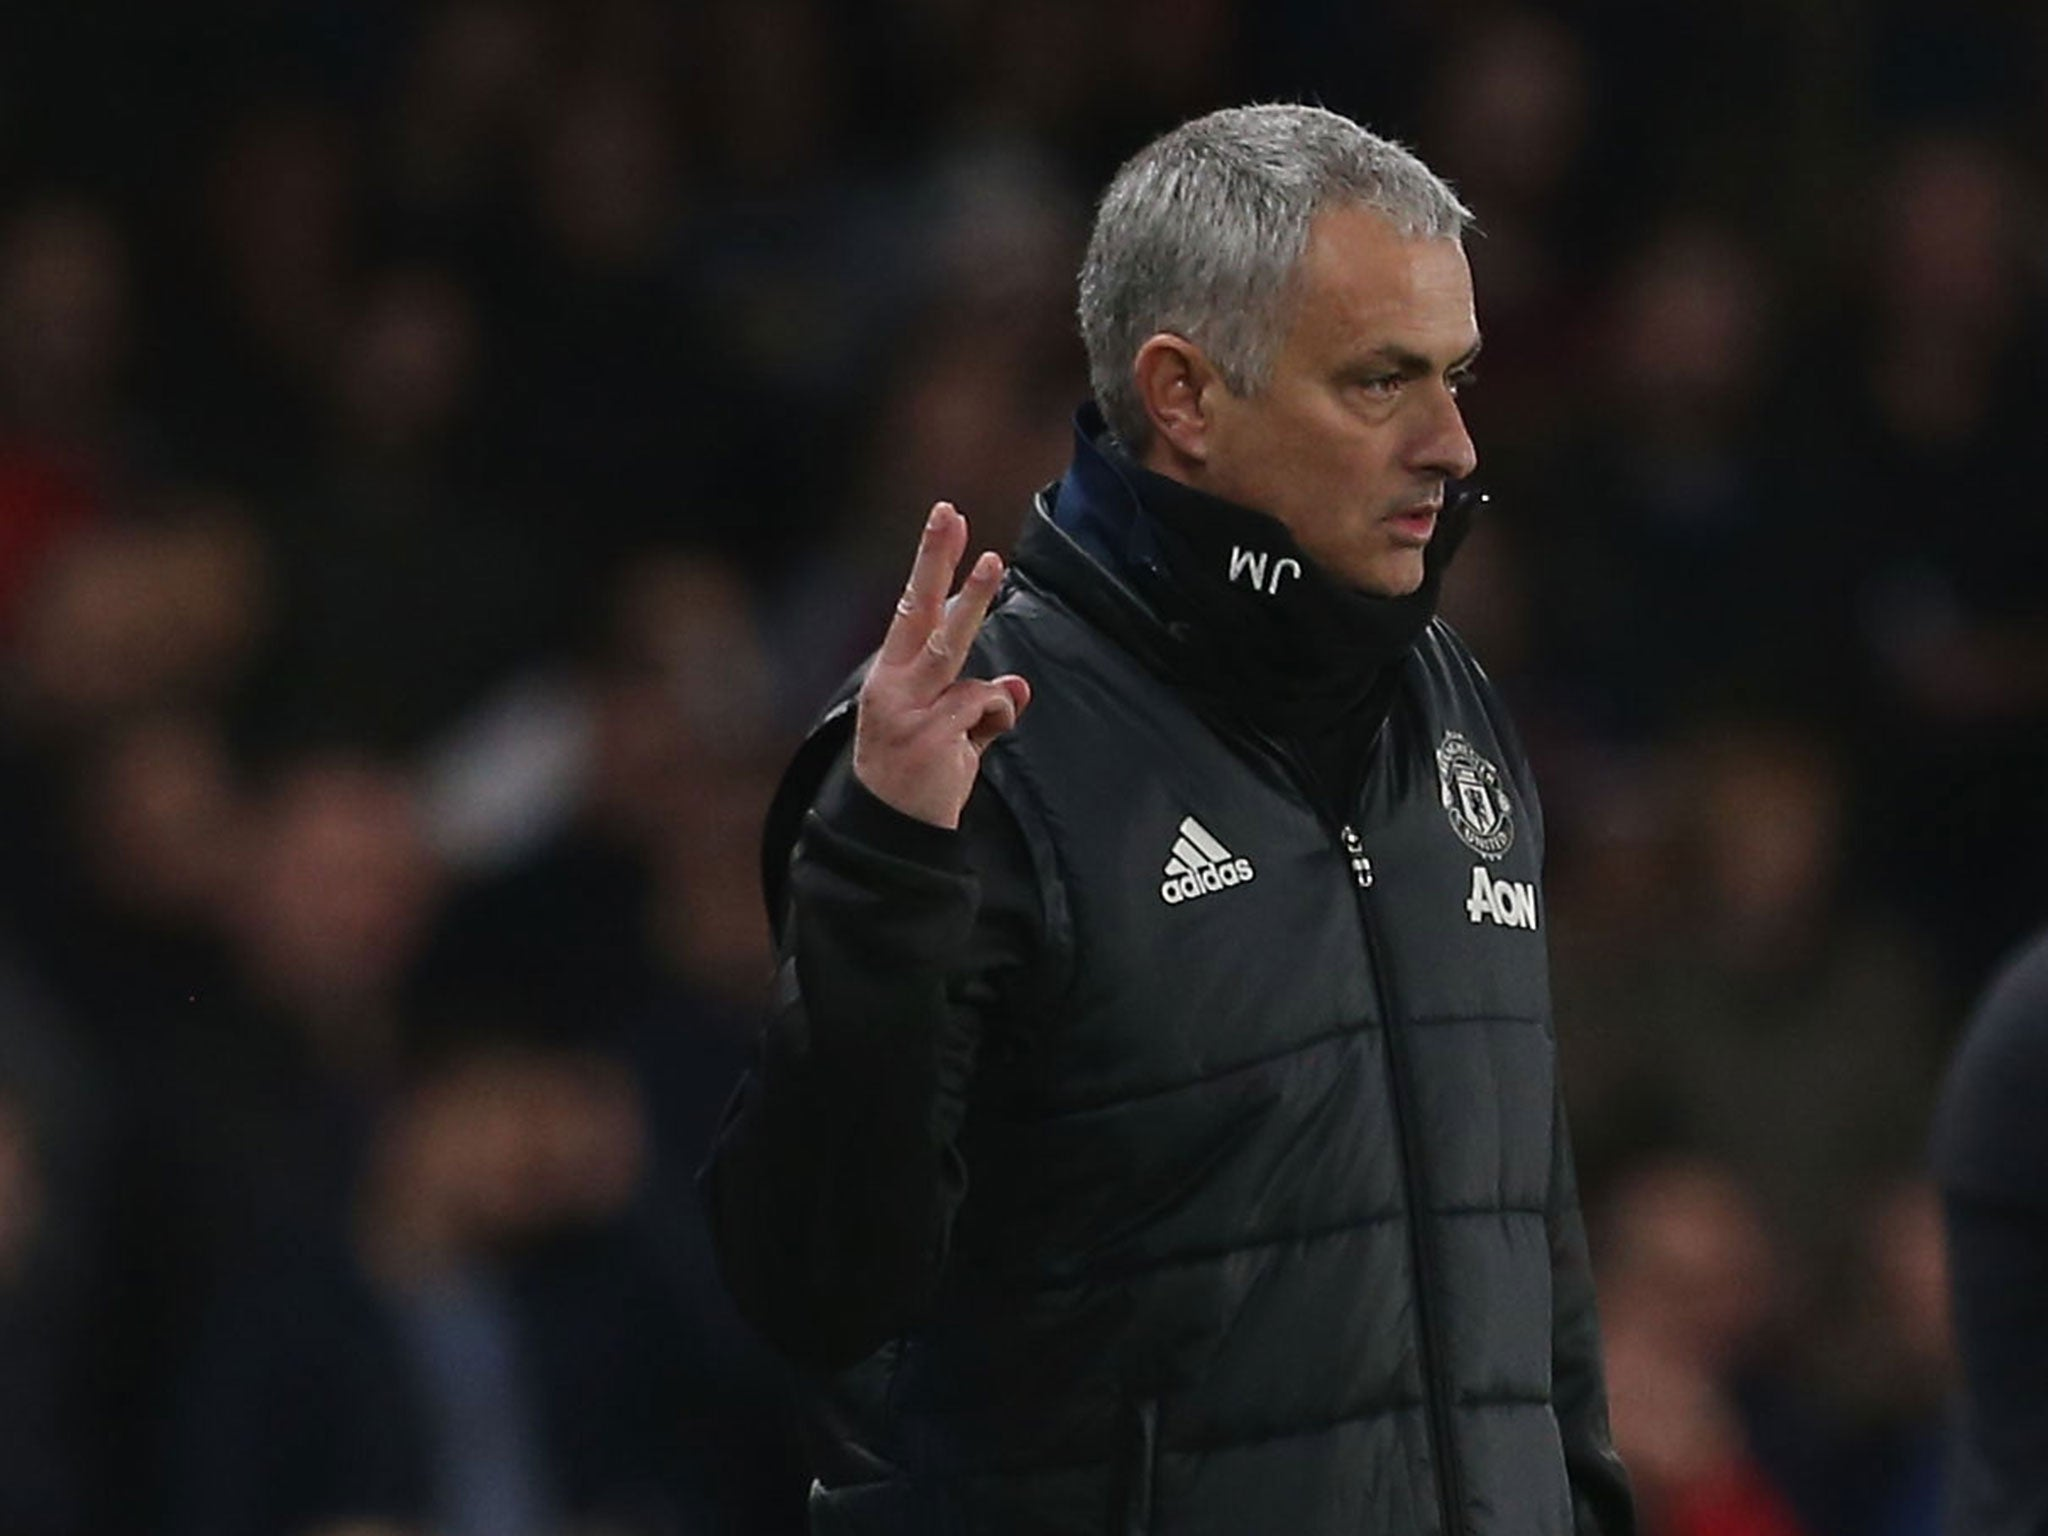 argumentative essay is jose mourinho the Jose mourinho and jurgen klopp have an almighty argument on the touchline jose mourinho and jurgen klopp have an almighty argument on the touchline.